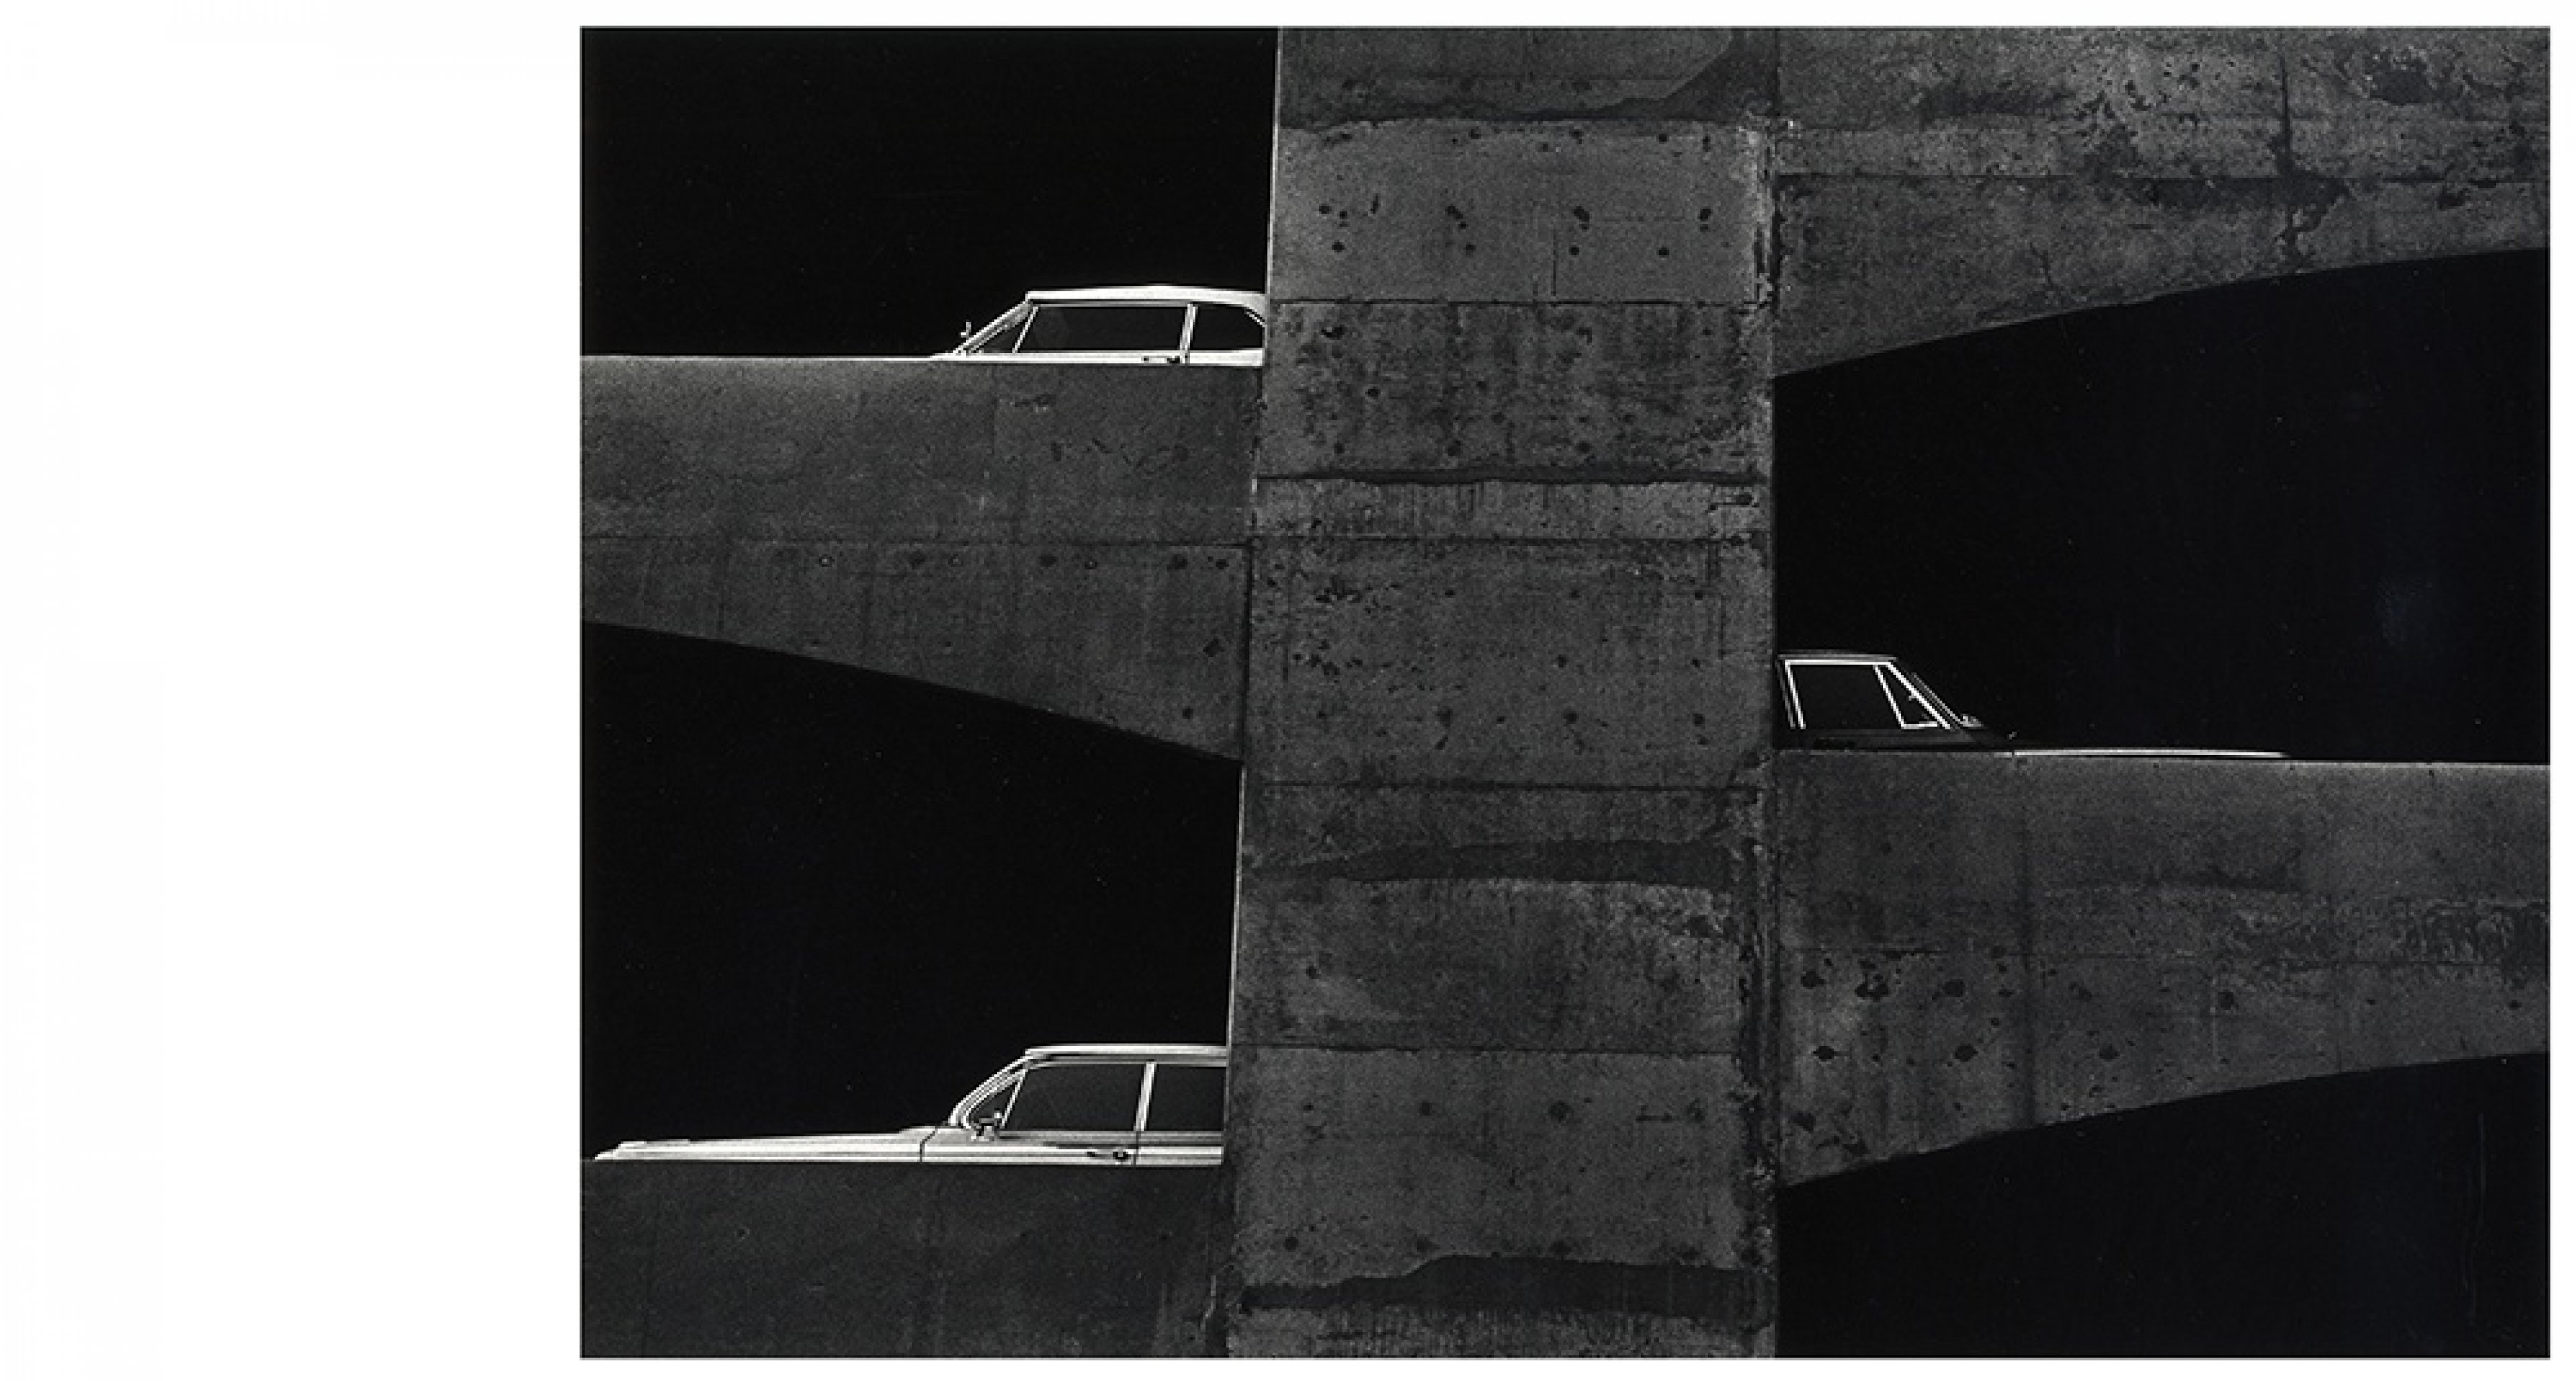 Ray K. Metzker, Washington, DC, 1964 Gelatin silver print, 20 × 25.5 cm Courtesy Les Douches la Galerie, Paris/Laurence Miller Gallery, New York © Estate Ray K. Metzker, courtesy Les Douches la Galerie, Paris/Laurence Miller Gallery, New York